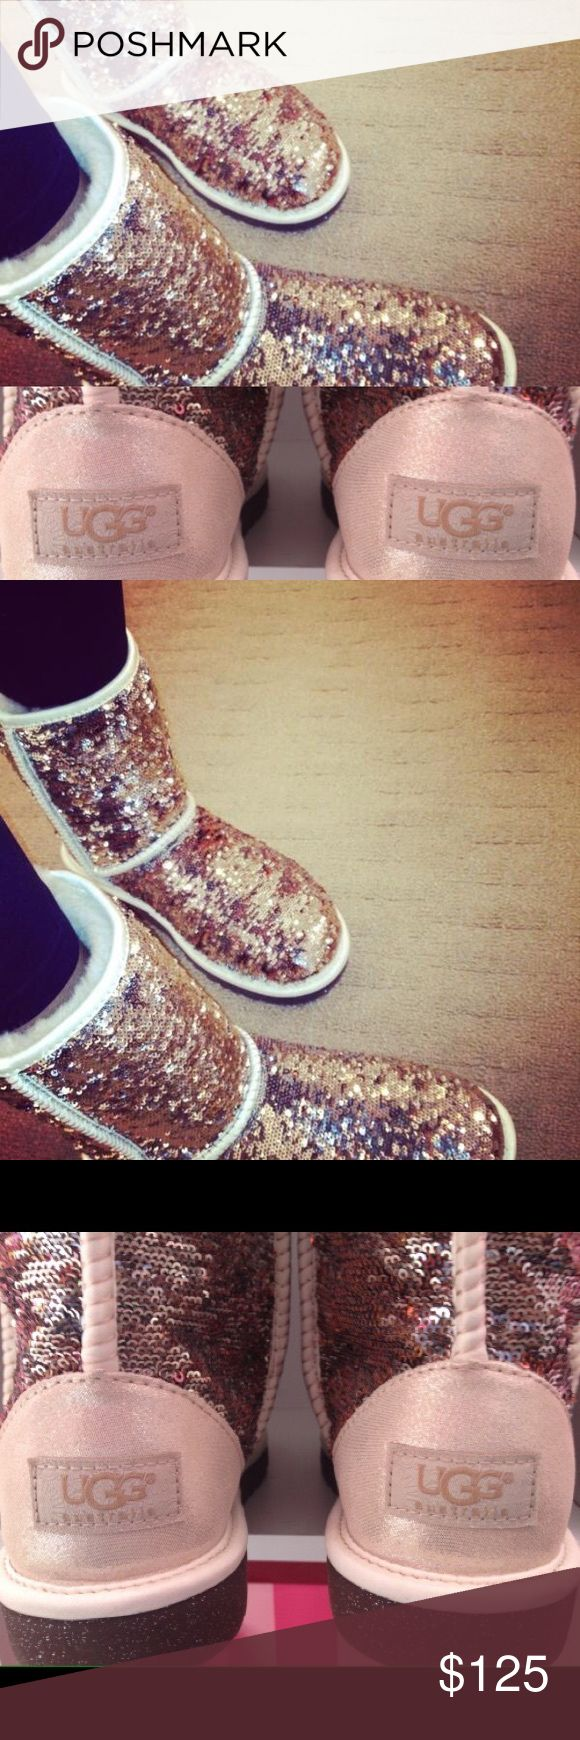 Classic Sequin Ugg Champagne classic sequined Uggs. Gently used. Original packaging with Authenticity proof. UGG Shoes Winter & Rain Boots